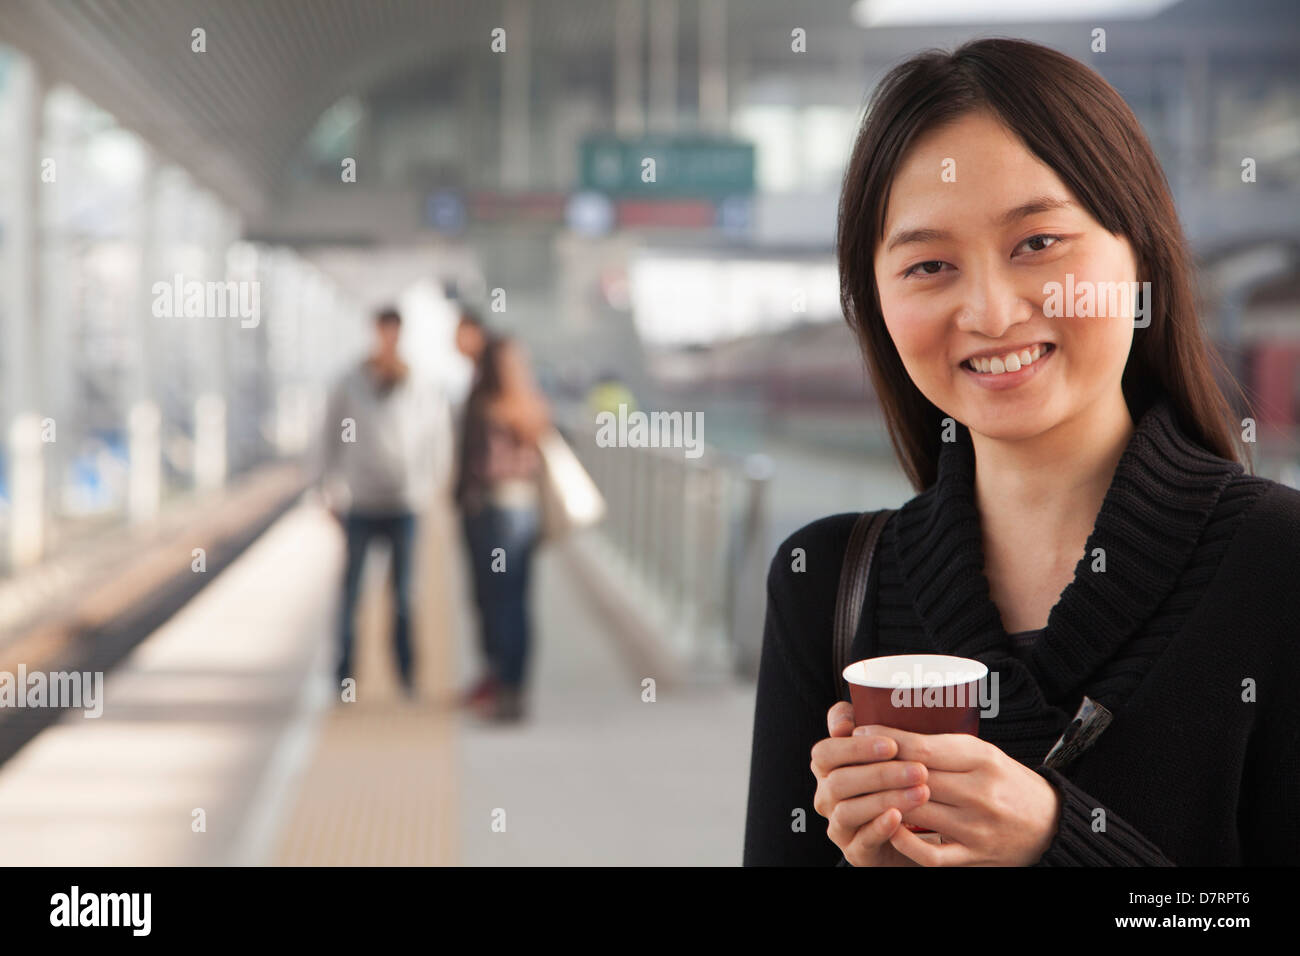 Young Woman on Train Platform - Stock Image